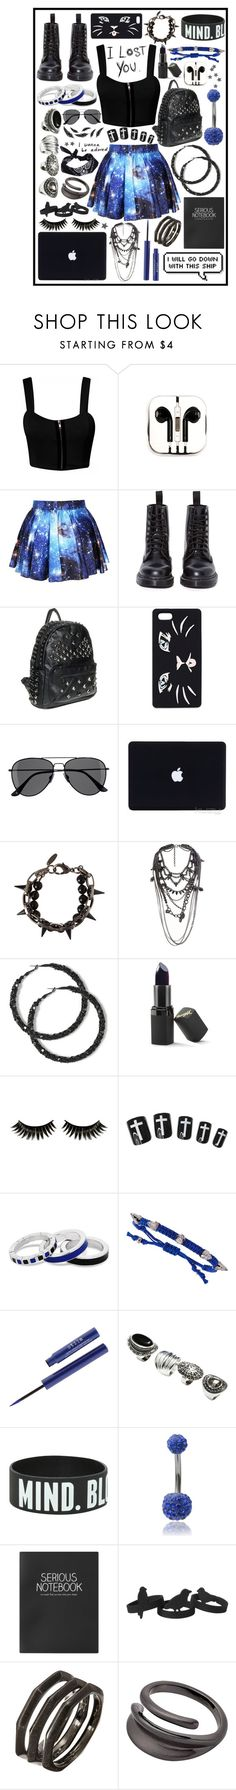 """""""bluh"""" by cupa1213 ❤ liked on Polyvore featuring PhunkeeTree, Dr. Martens, Talula, H&M, Joomi Lim, River Island, Barry M, Boohoo, Principles by Ben de Lisi and Tai"""